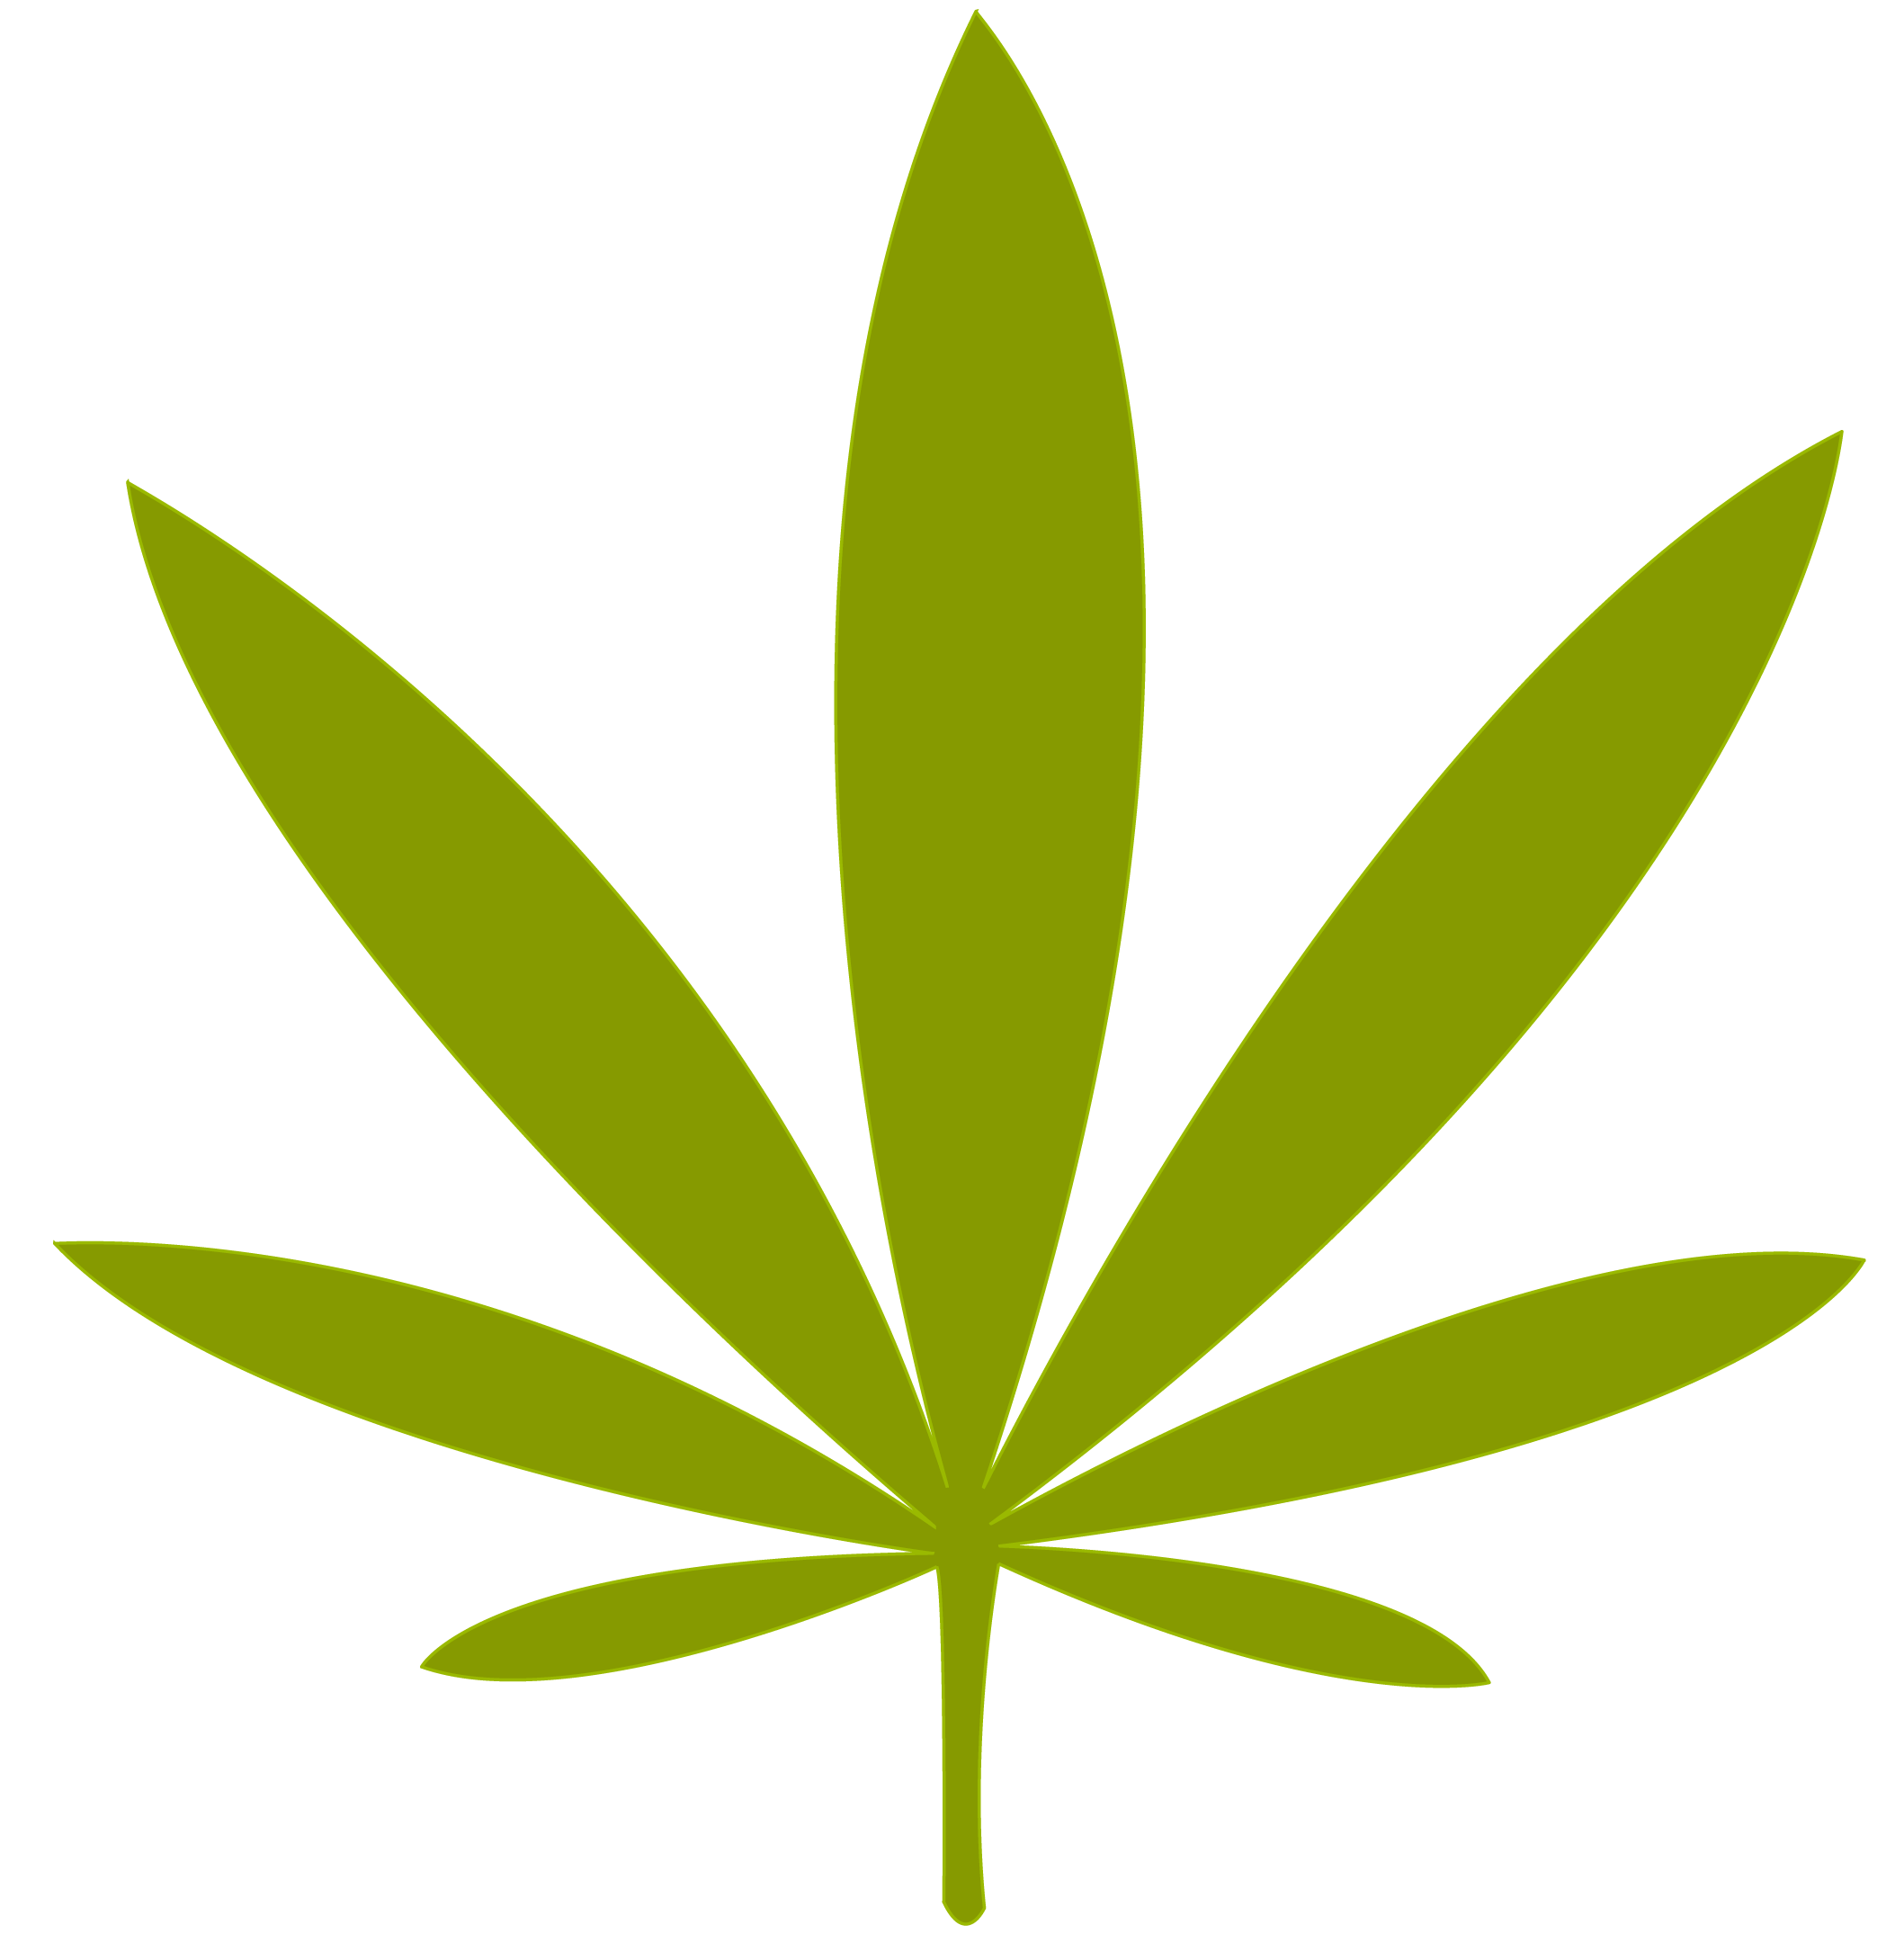 Weed Plant Drawing | Free download on ClipArtMag |Weed Plant Drawings